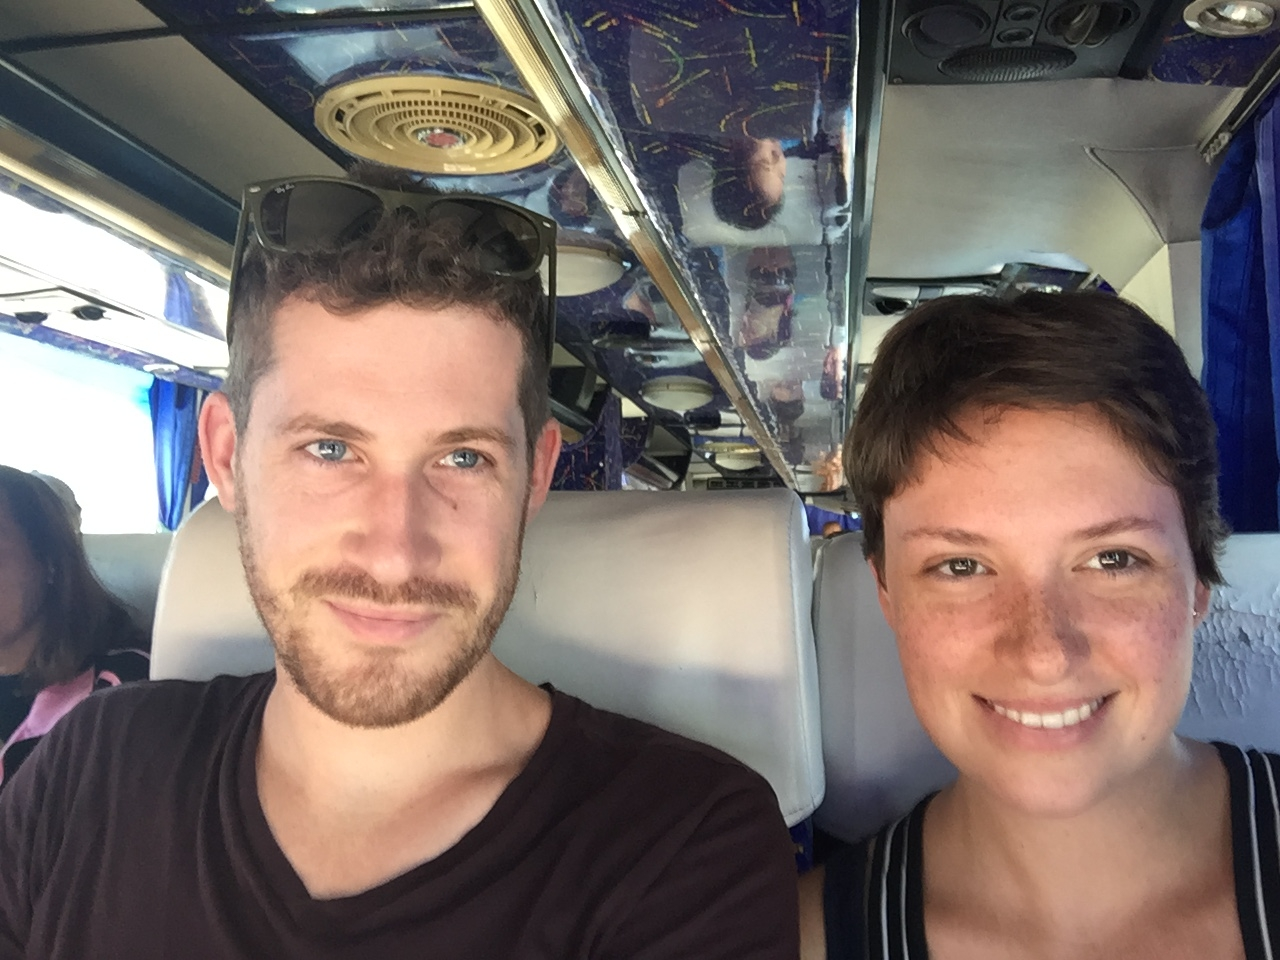 On a bus in Thailand